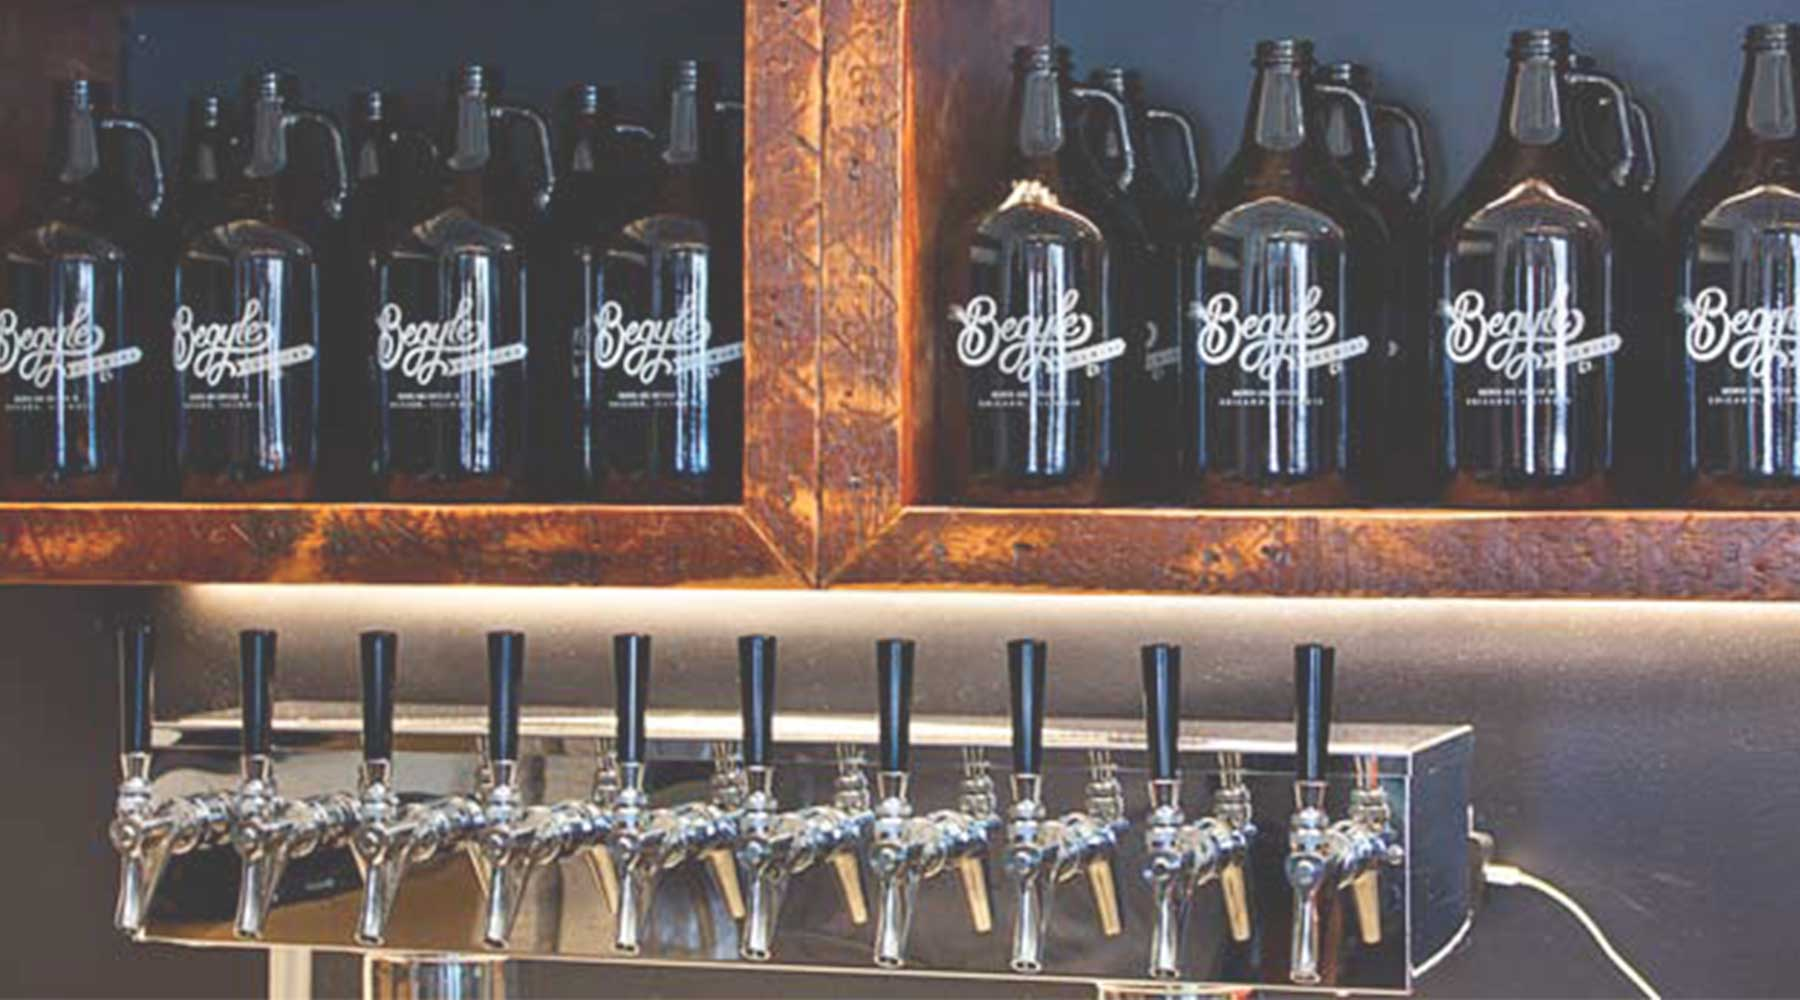 Begyle Brewing Company   Just Wine